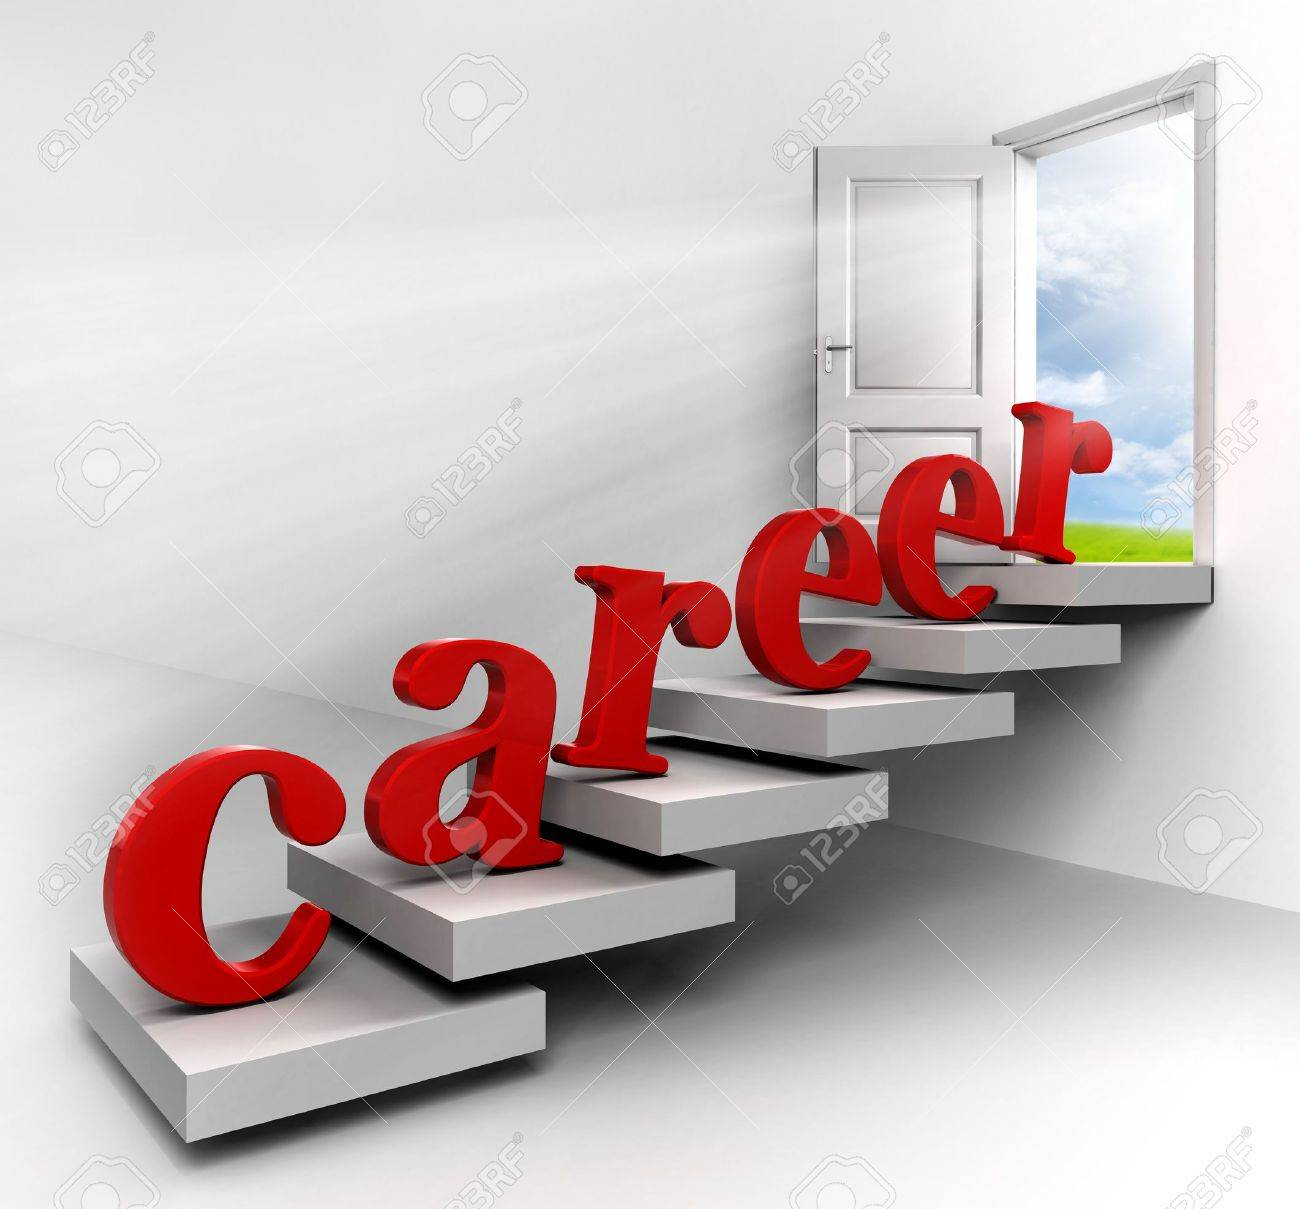 Career Ladder Red Word On Stair Up To Open Conceptual Door With View